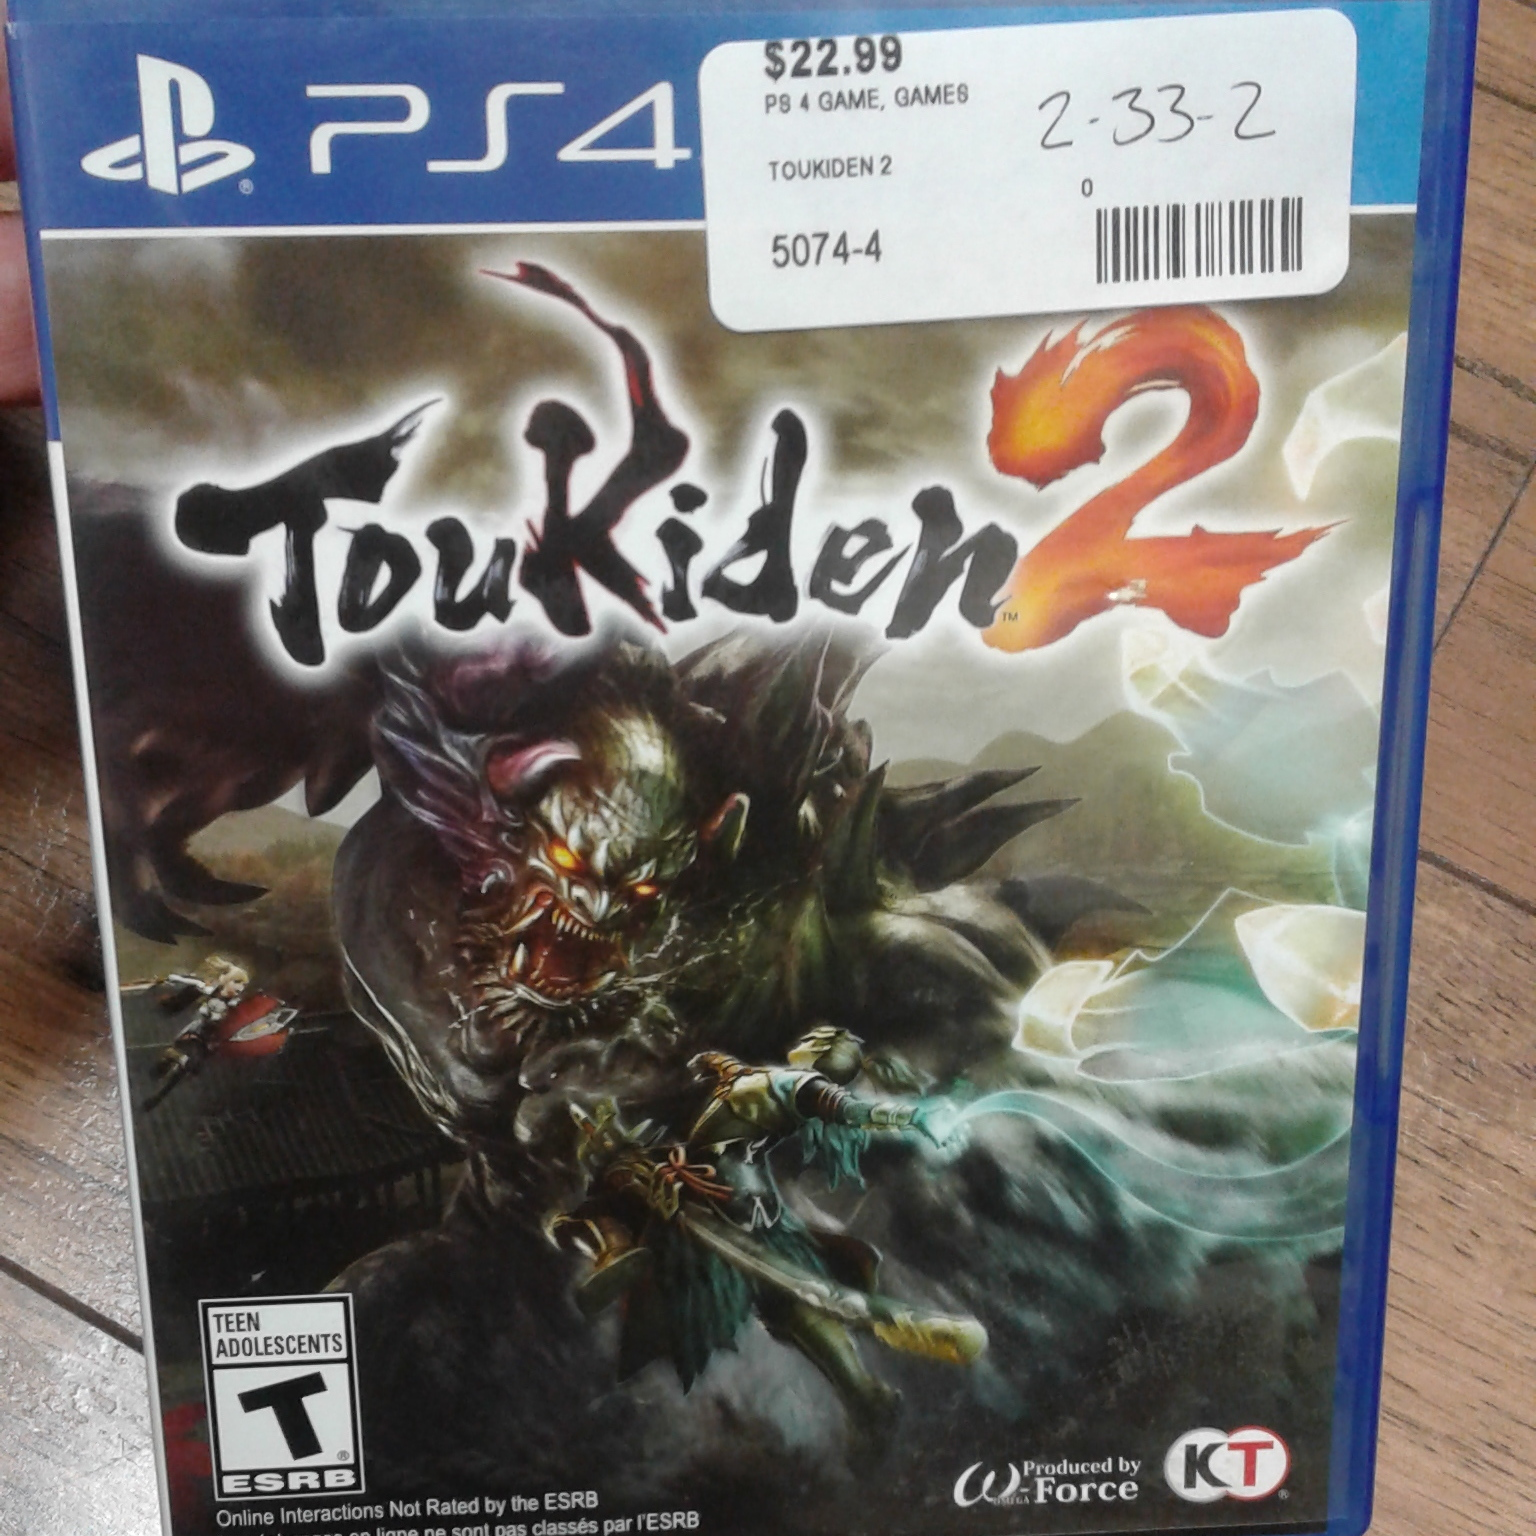 TOUKIDEN 2 - PS4 GAME